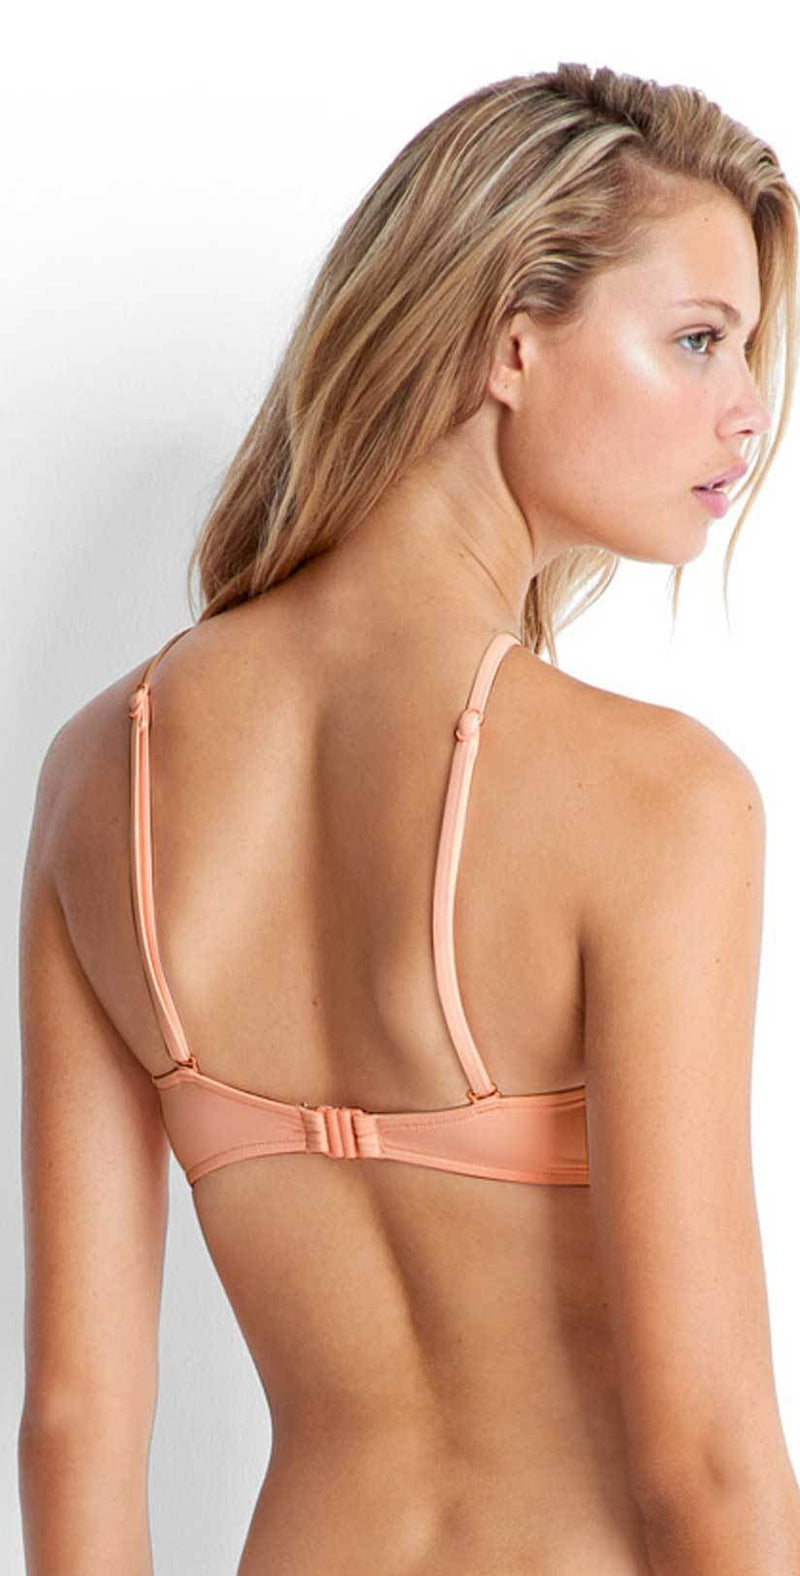 Seafolly Havana High Neck Top in Peach 30643-074-PCH: